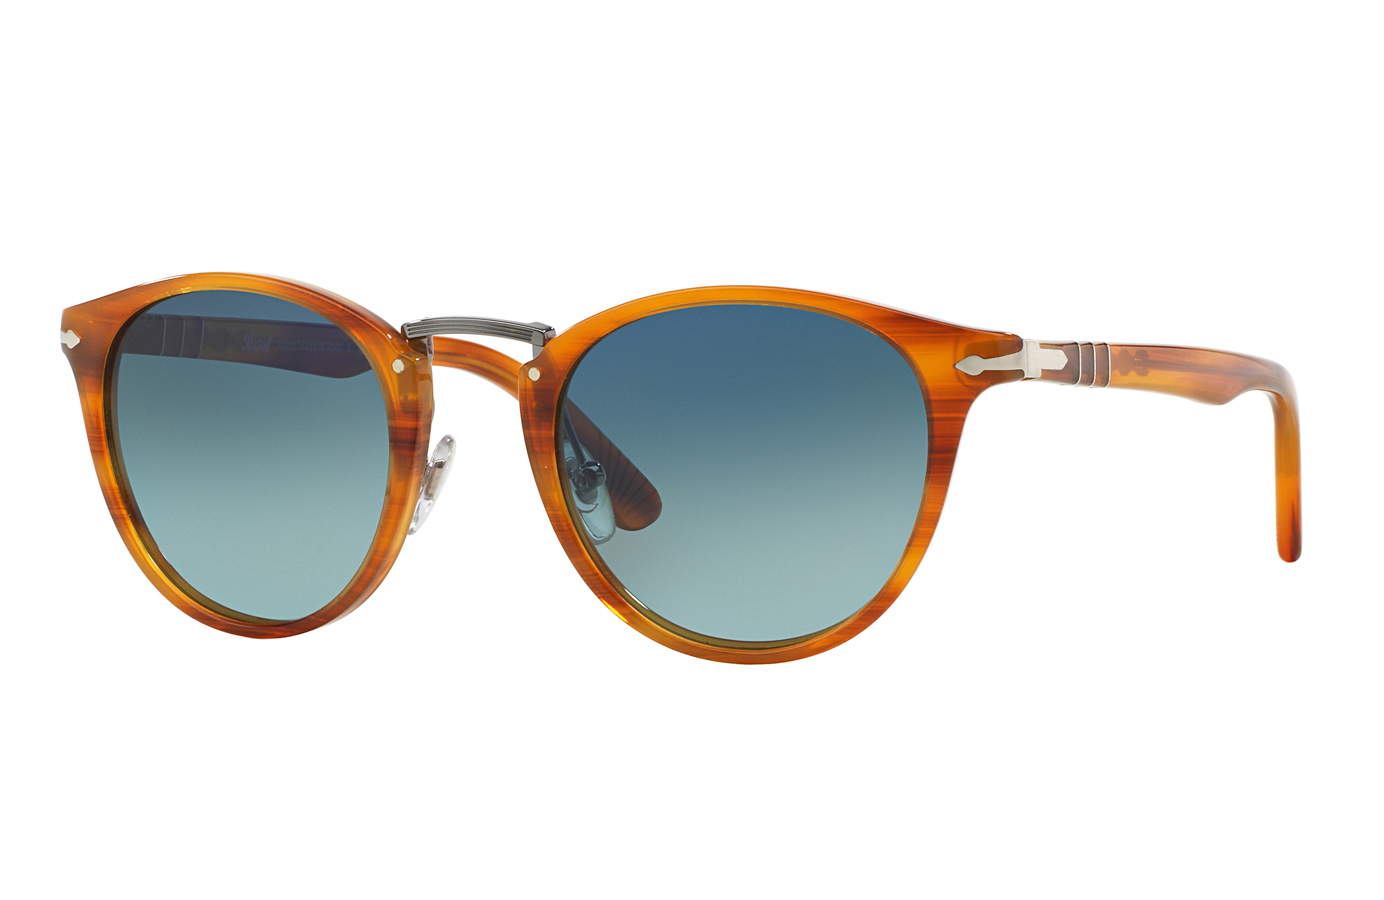 Persol_ronde zonnebril